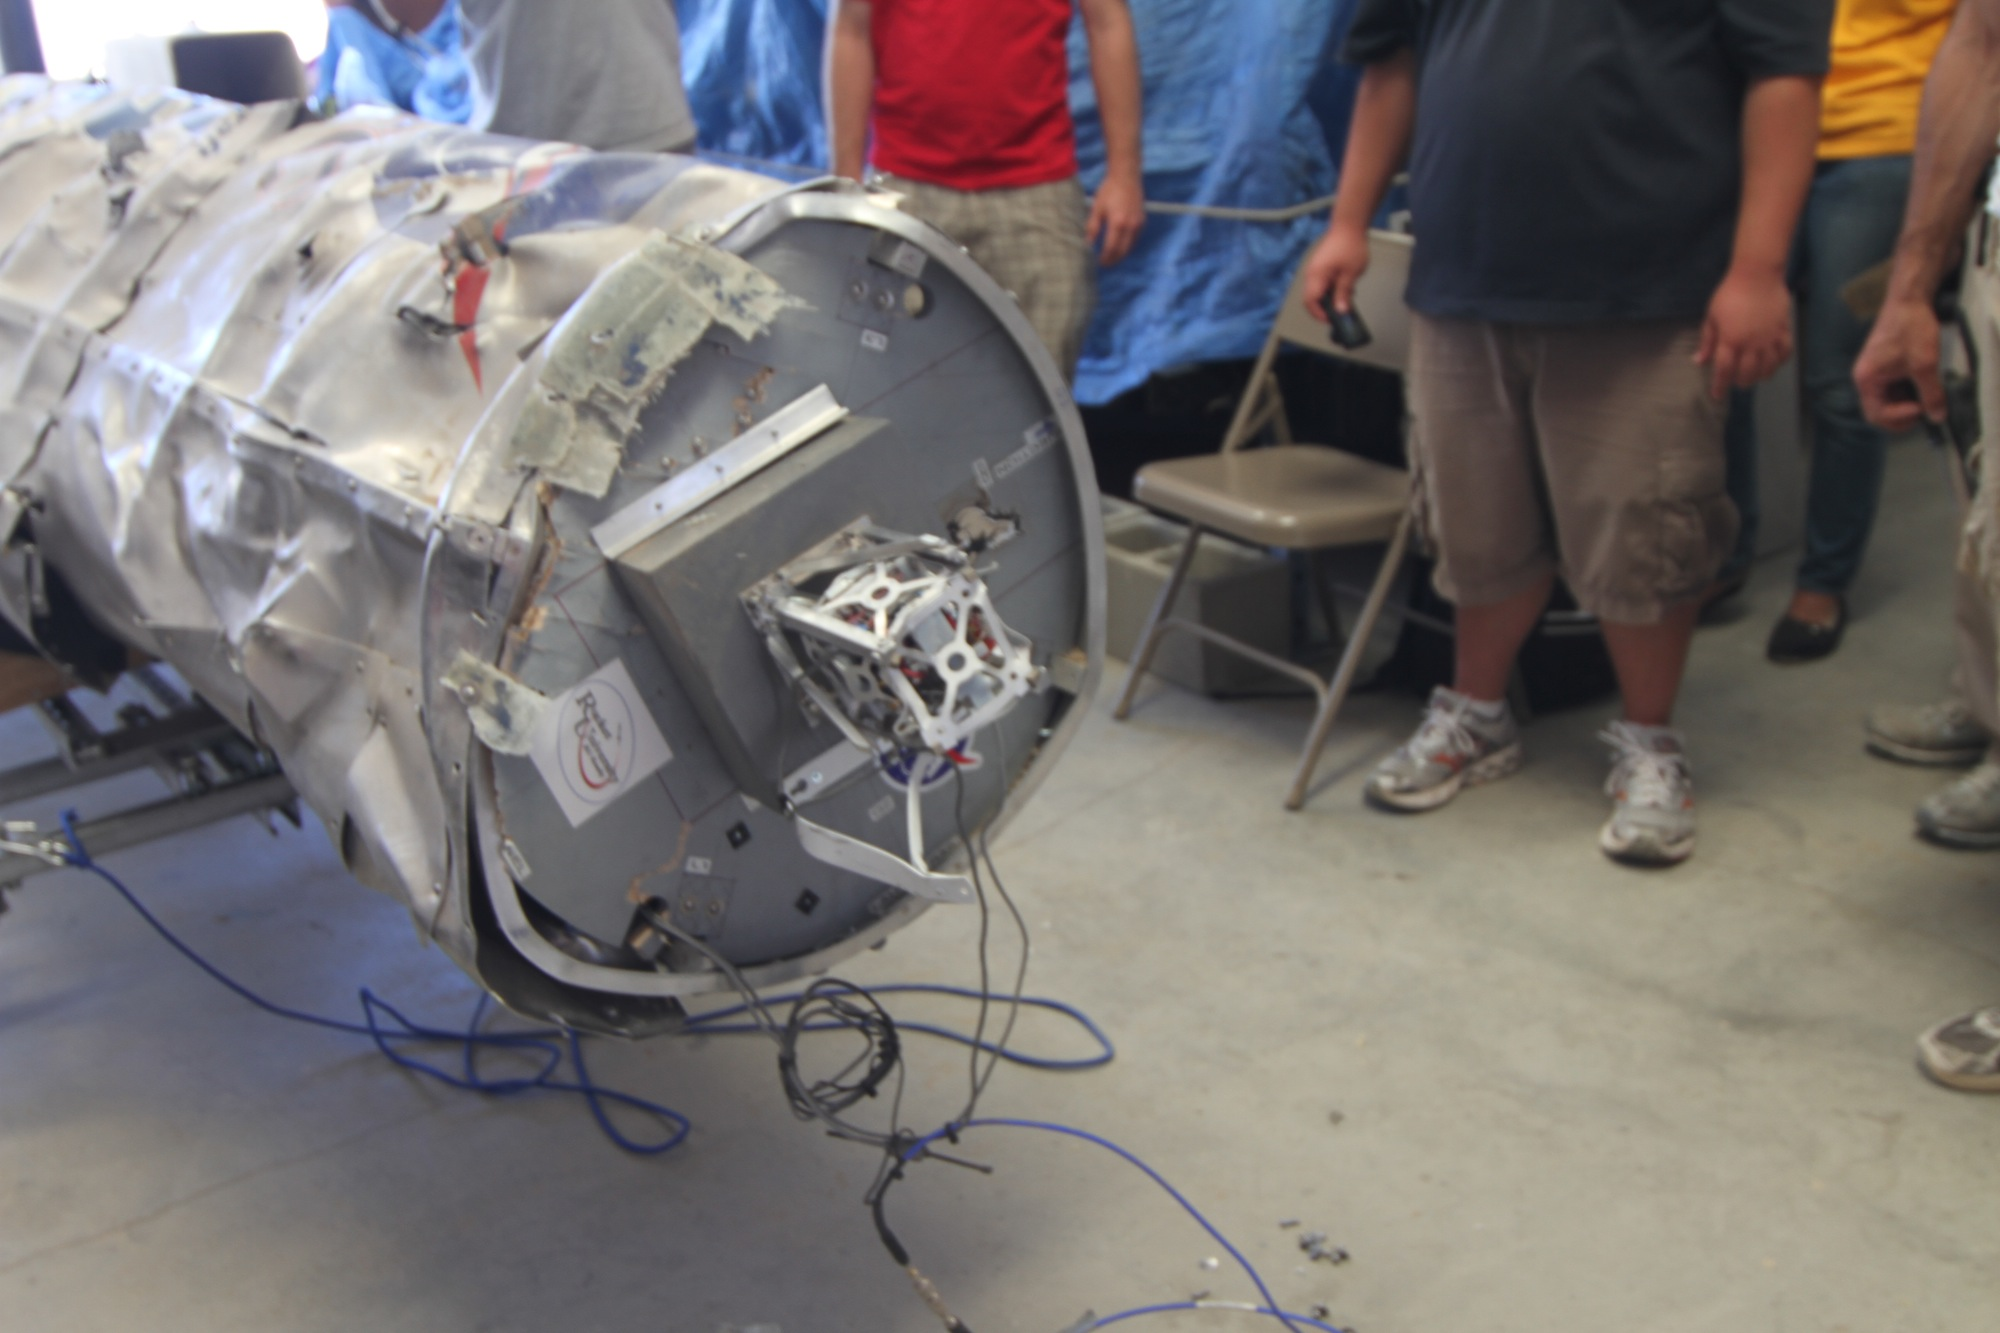 Dented Rocket University Broad Initiatives CubeSat